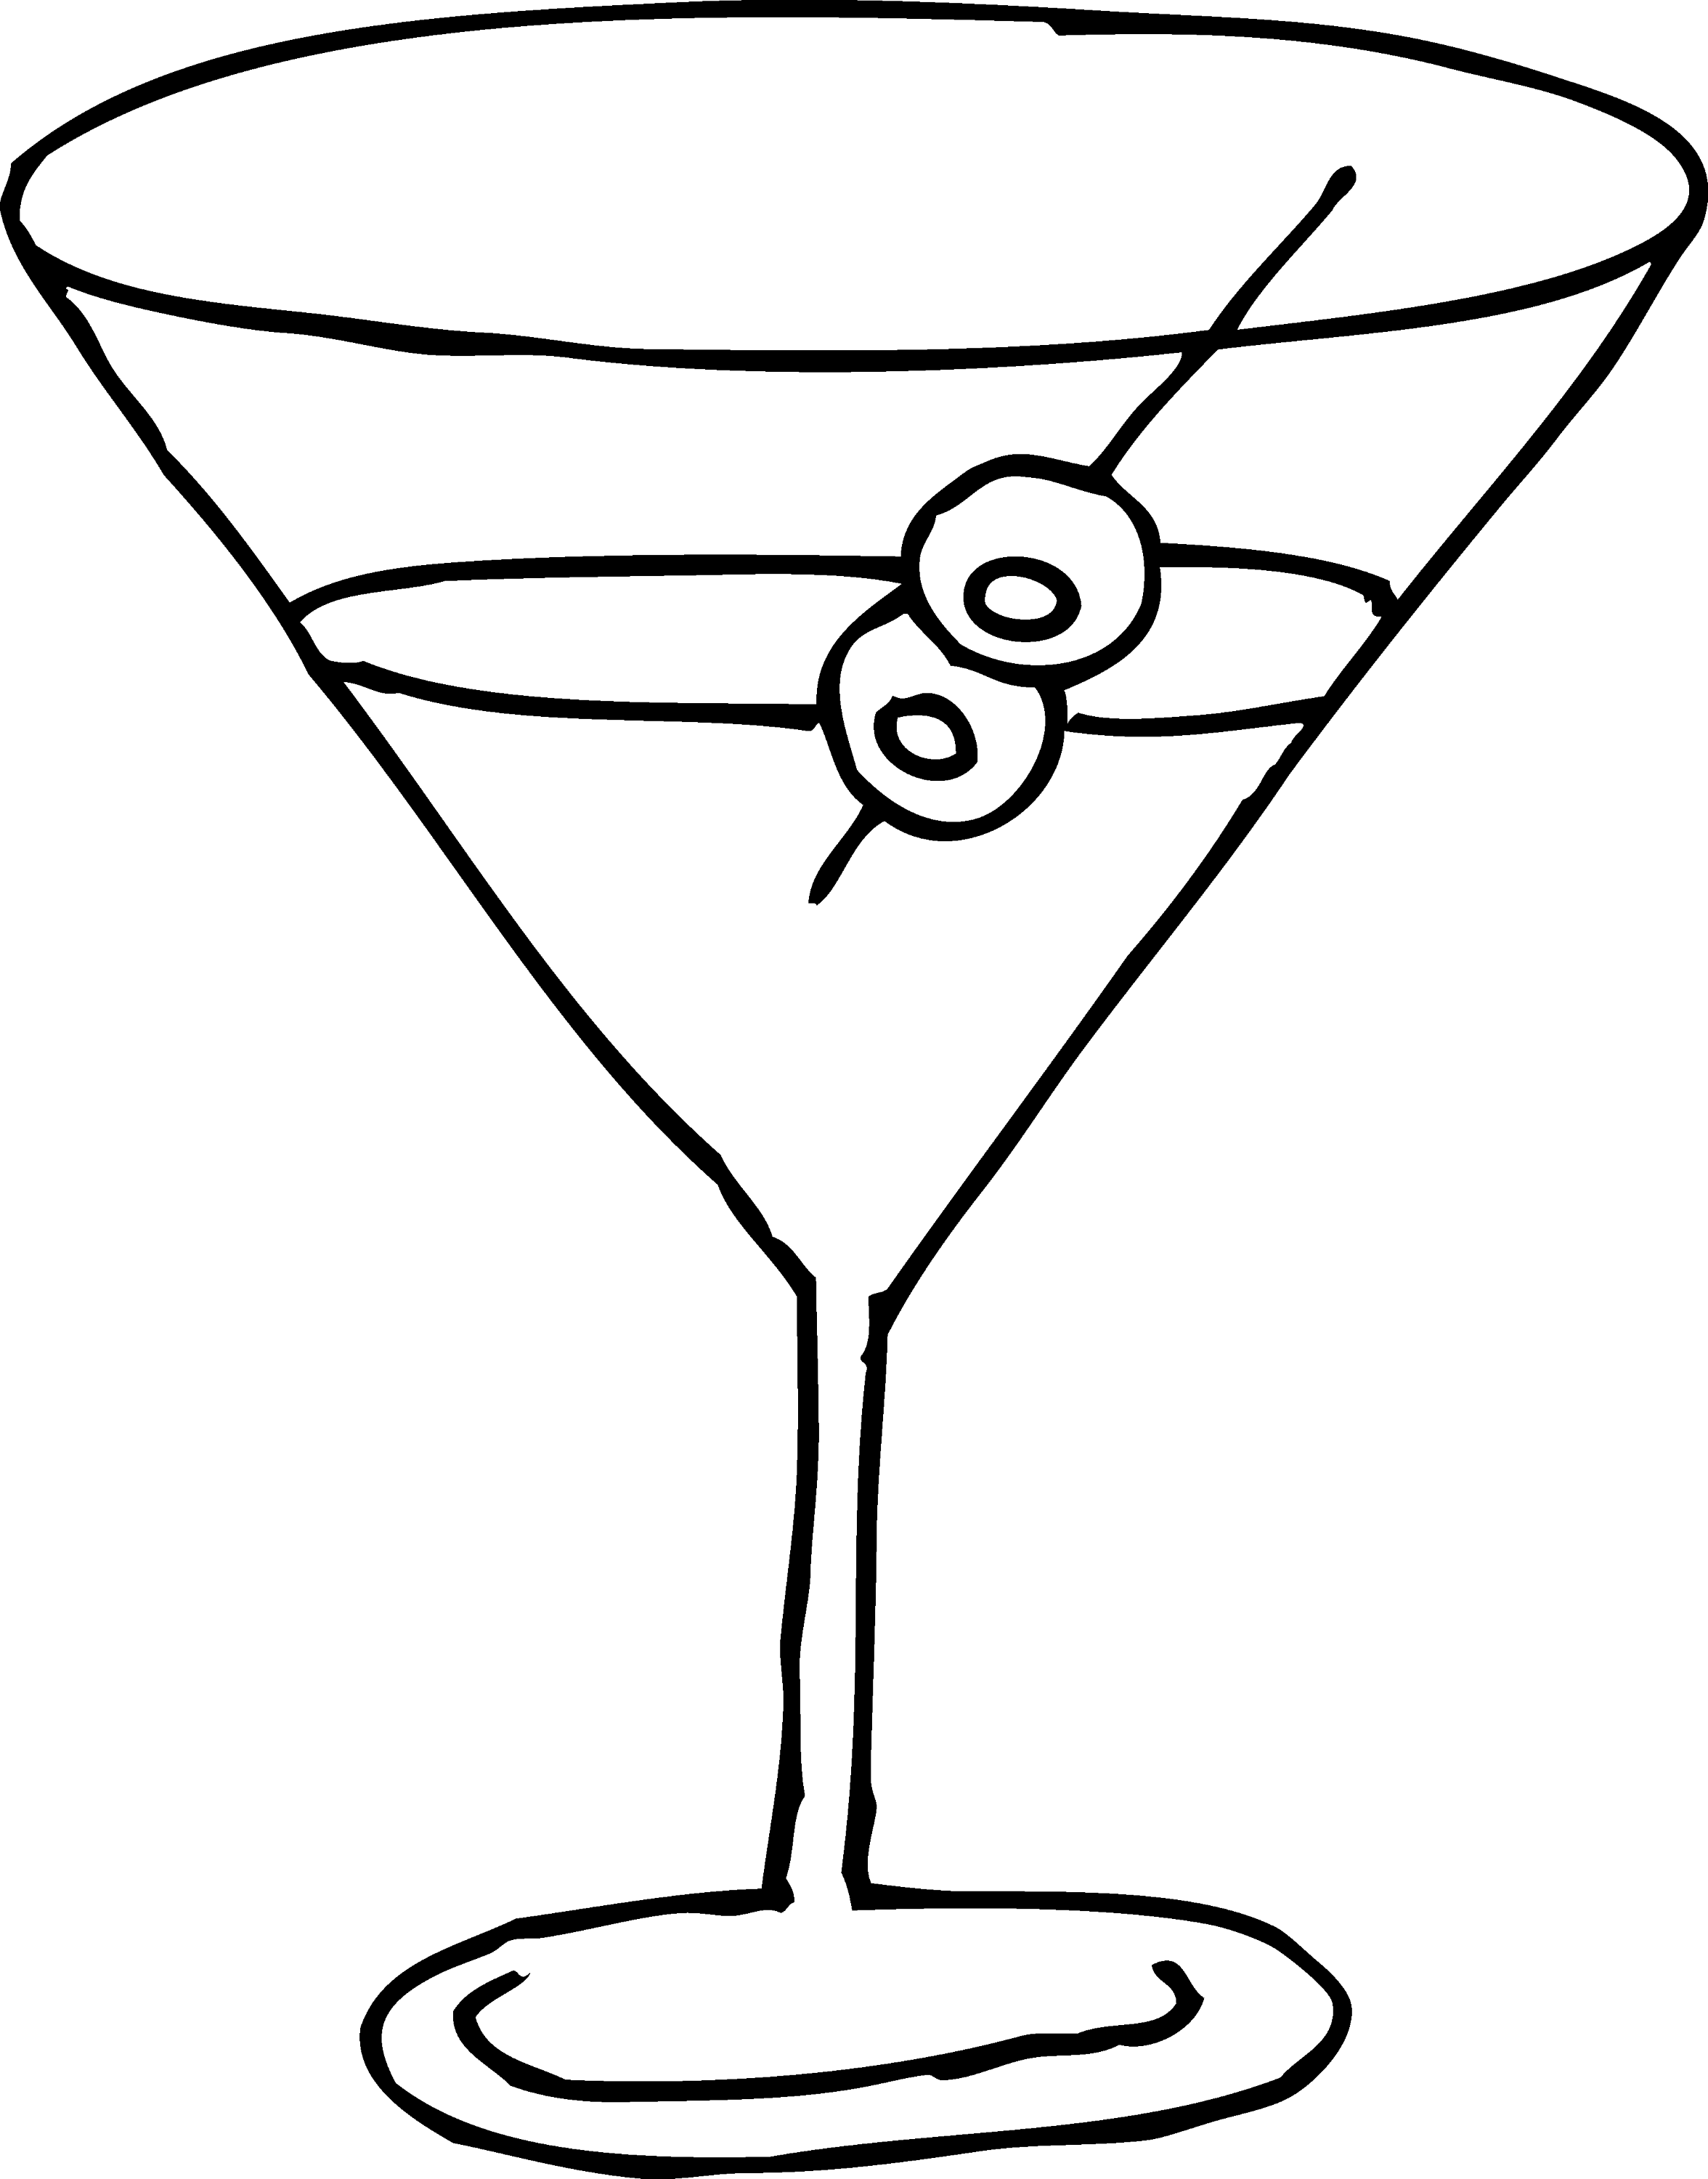 martini glass outline pin by muse printables on printable patterns at martini glass outline